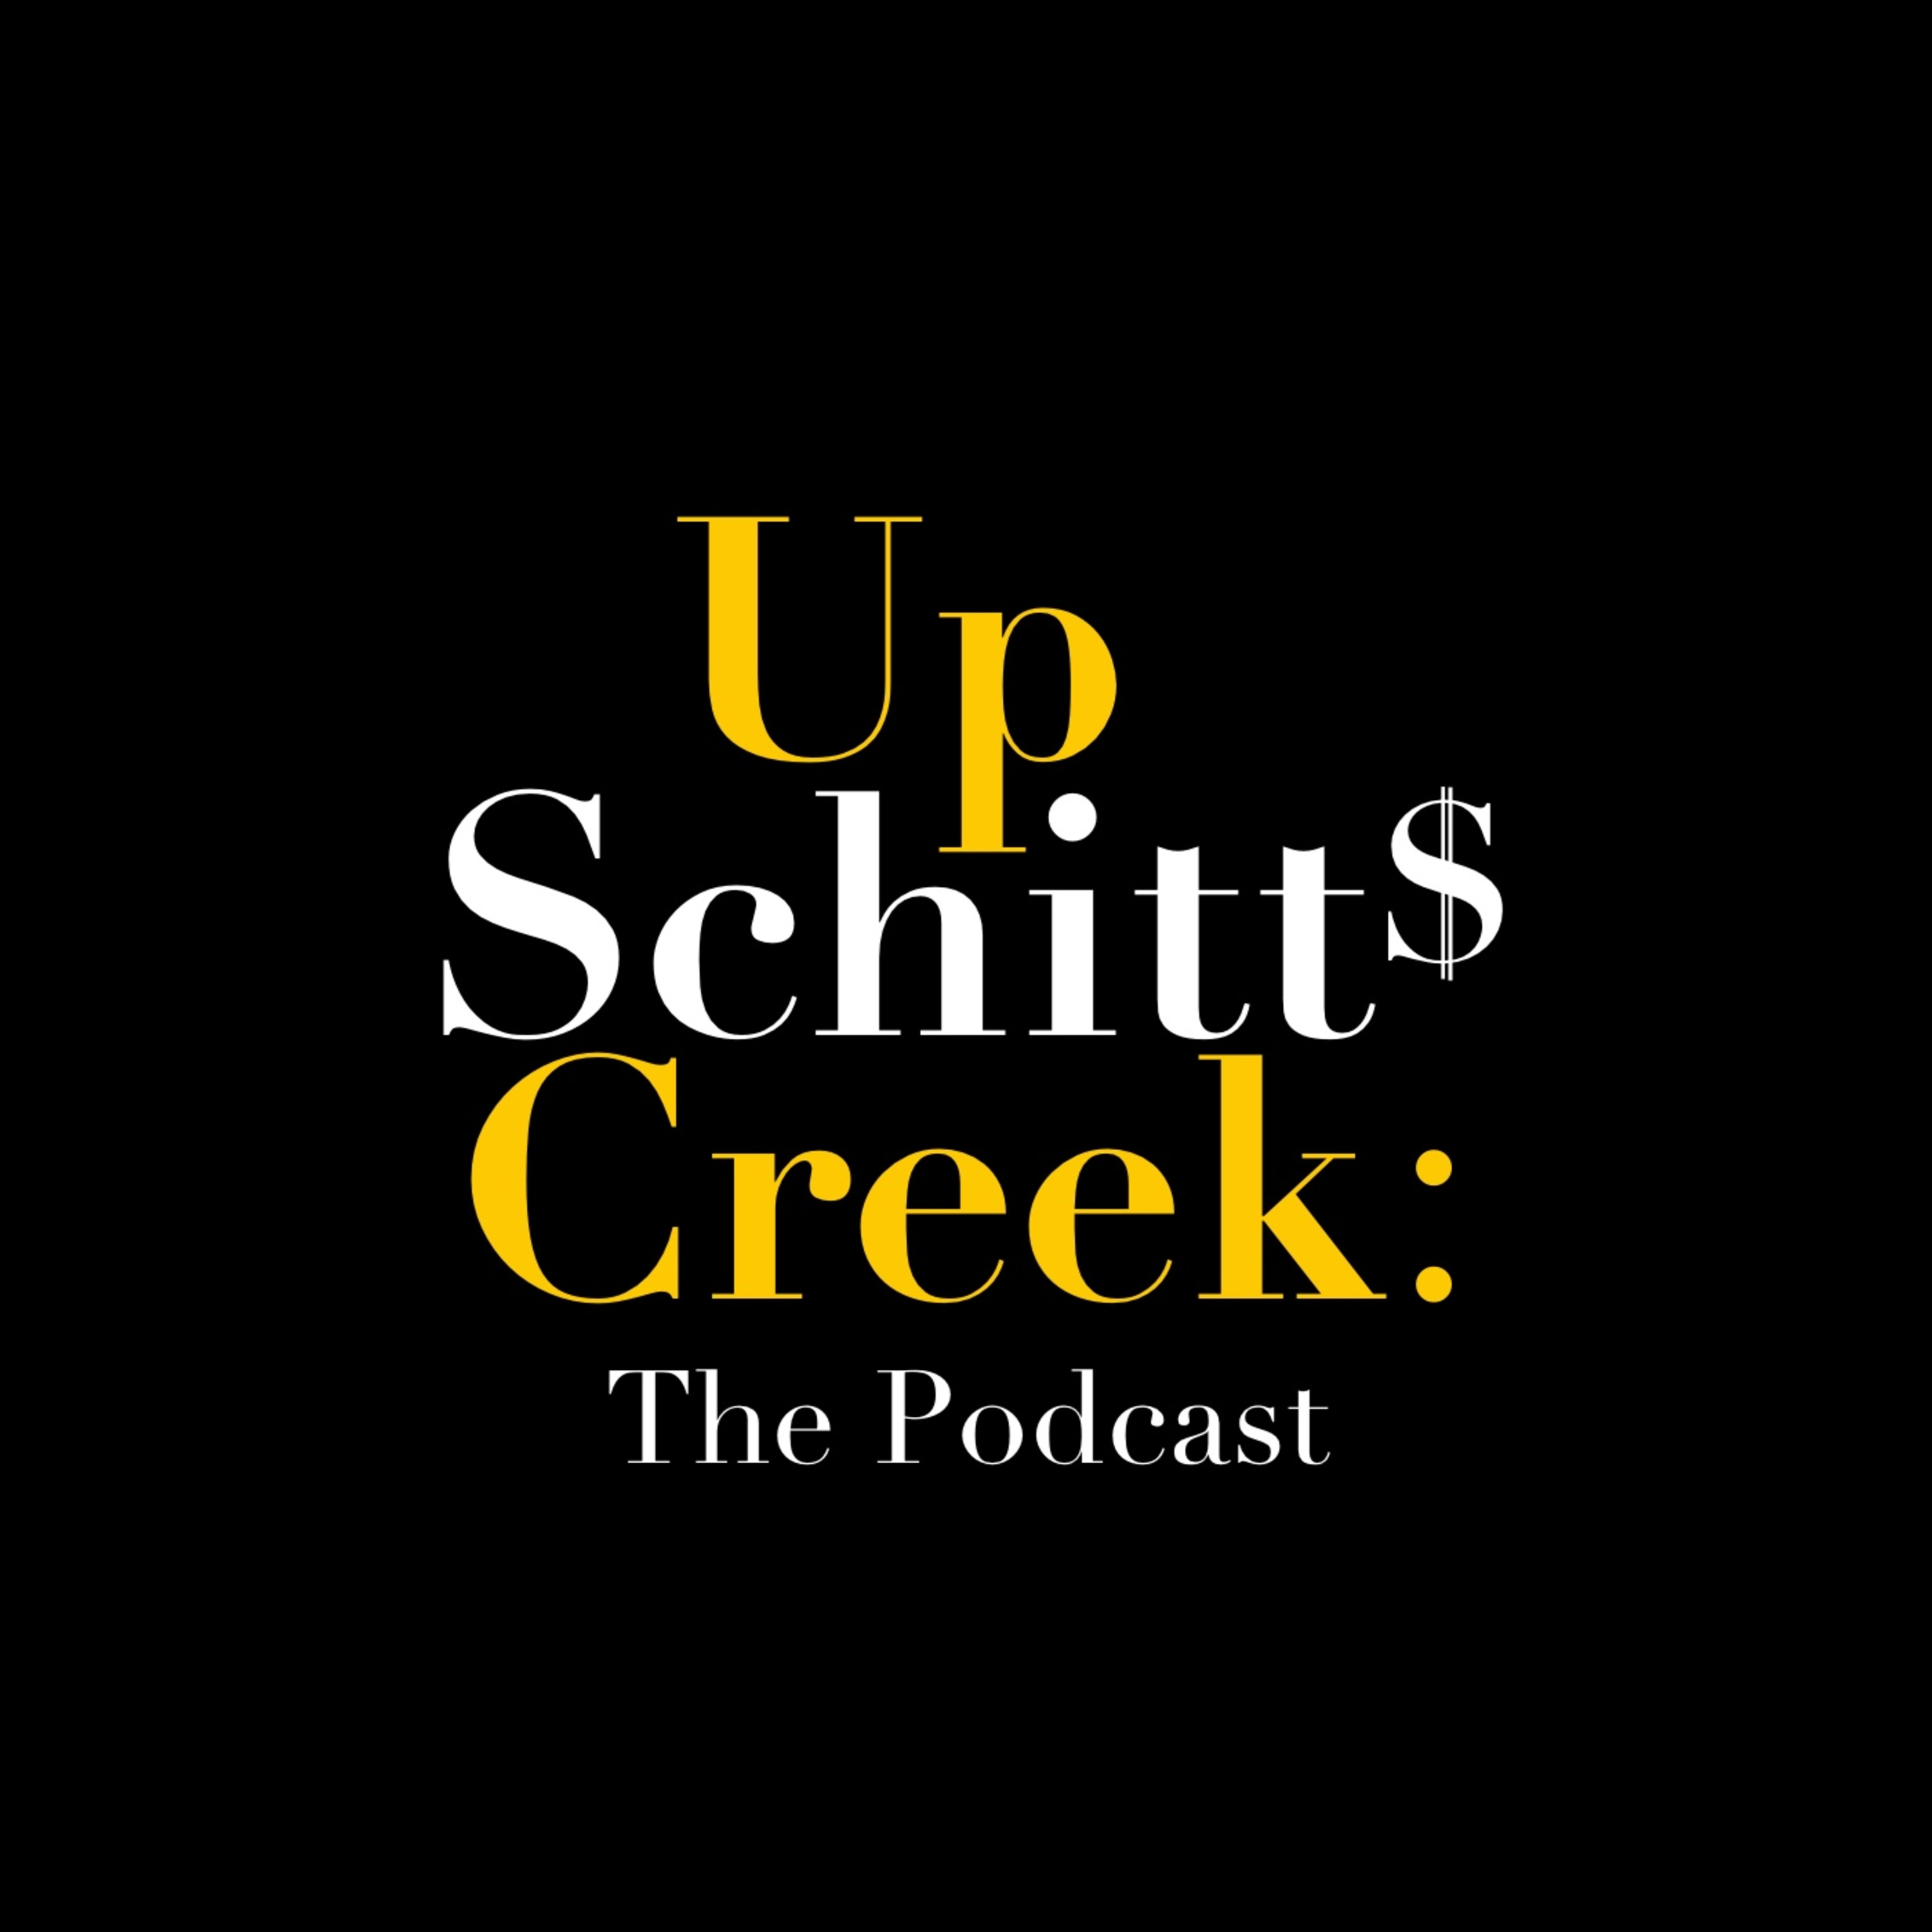 Up Schitt's Creek: The Podcast on Apple Podcasts